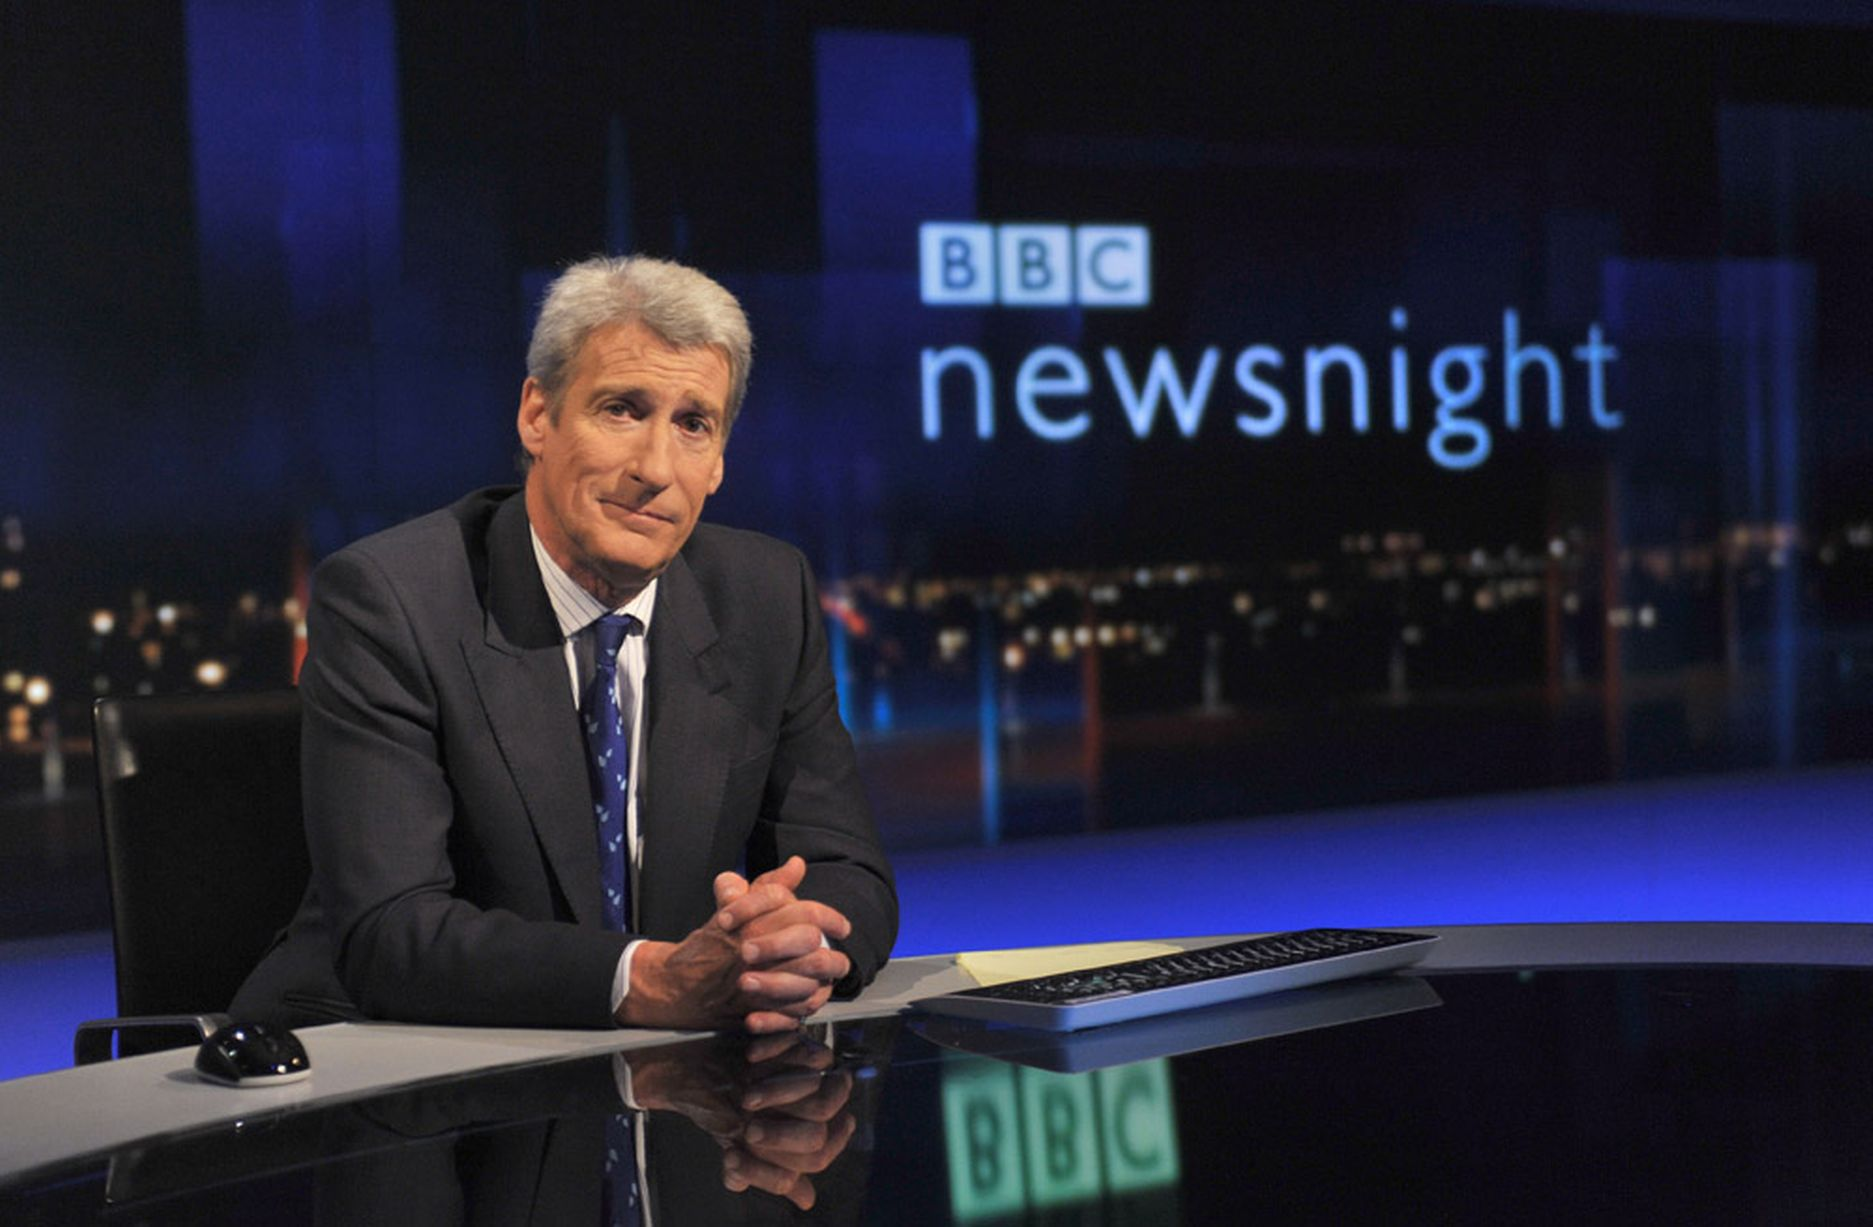 BBC Newsnight with Jeremy Paxman